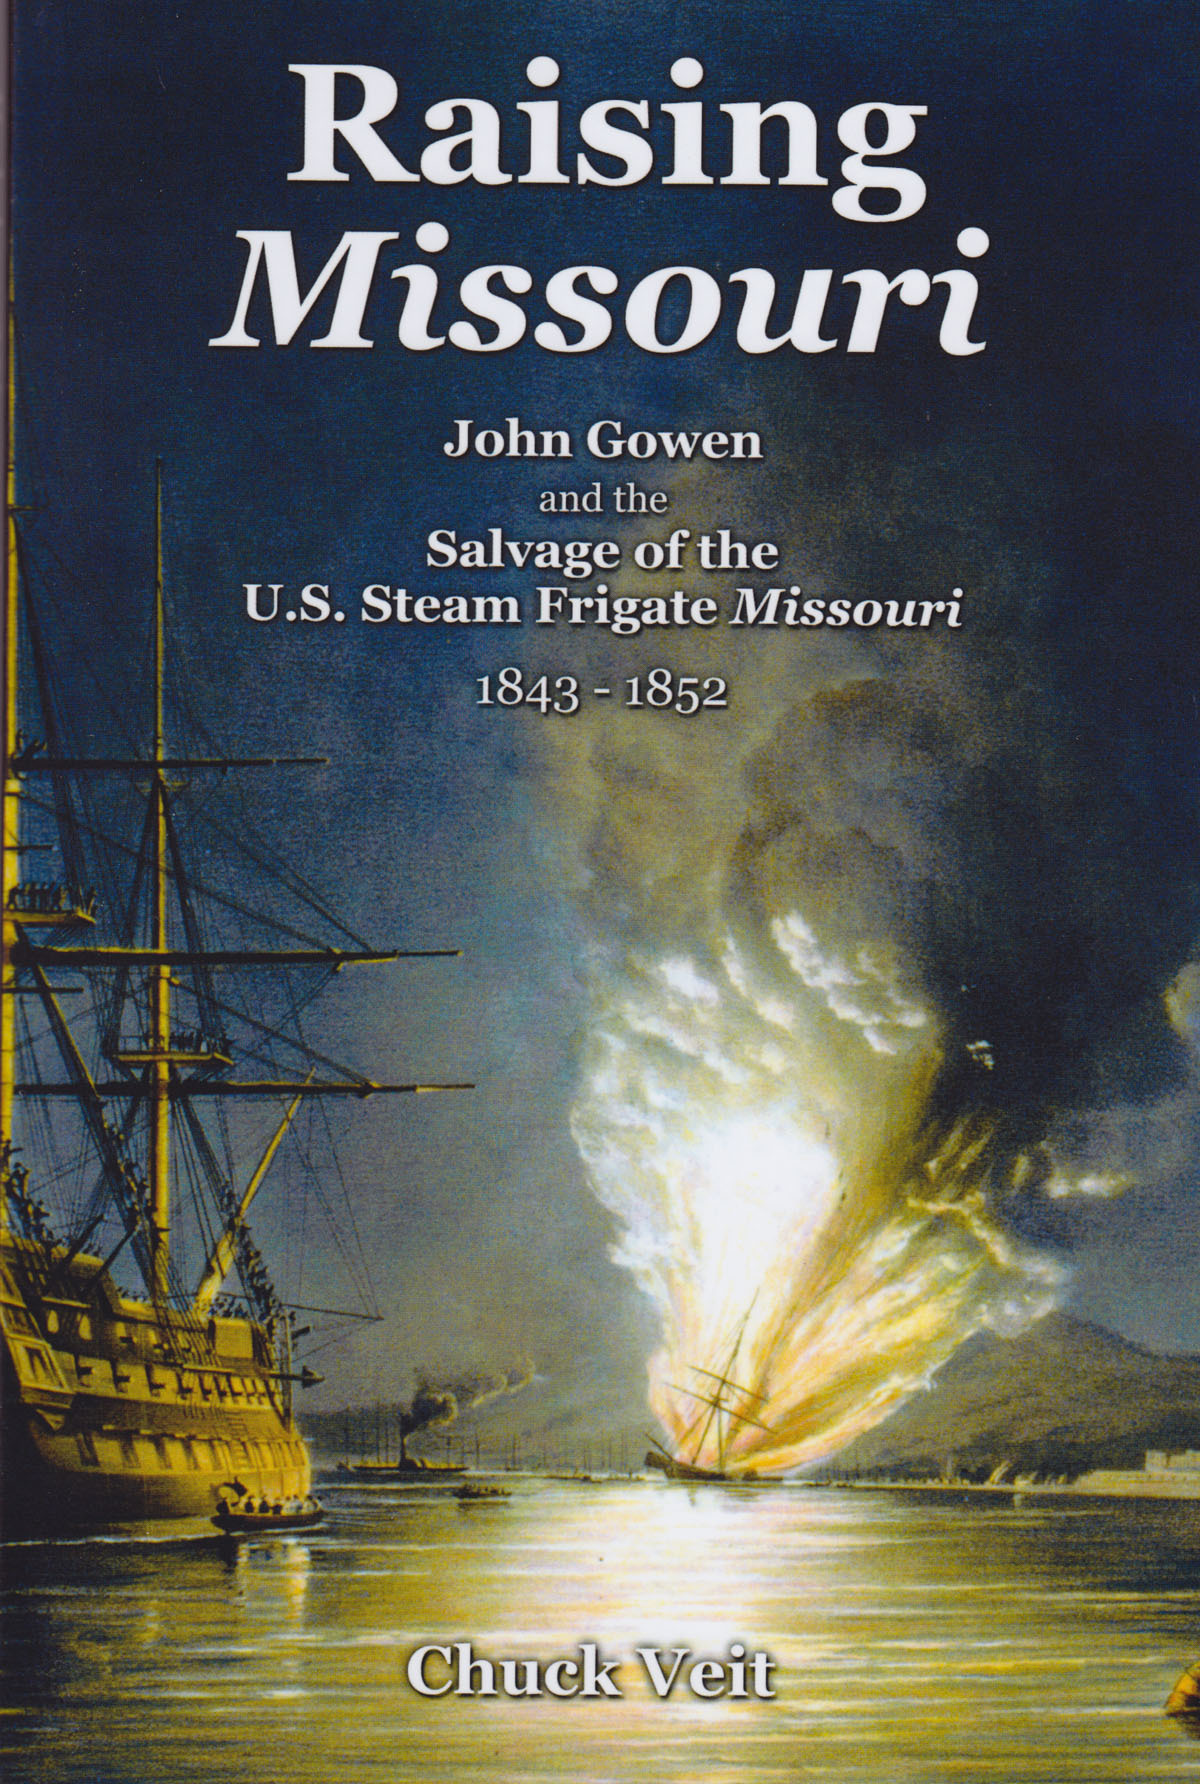 BOOK REVIEW – Raising Missouri  By Chuck Veit, Lulu.com, Raleigh, NC. (2012) Reviewed by David Kronenfeld Chuck Veit in Raising Missouri has put together a tidy little volume detailing a little known footnote of American naval history – the sinking and salvage of USS Missouri. This is Veit's third book and continues in the vein of his focus on 19th century American naval history. Veit utilized the self-publication platform Lulu.com to bring this work to fruition. Without self-publication venues such as Lulu.com such a book might not have been brought into print and Veit should be commended for using Lulu to bring an obscure, but notable event to the reading public. (read the full review)